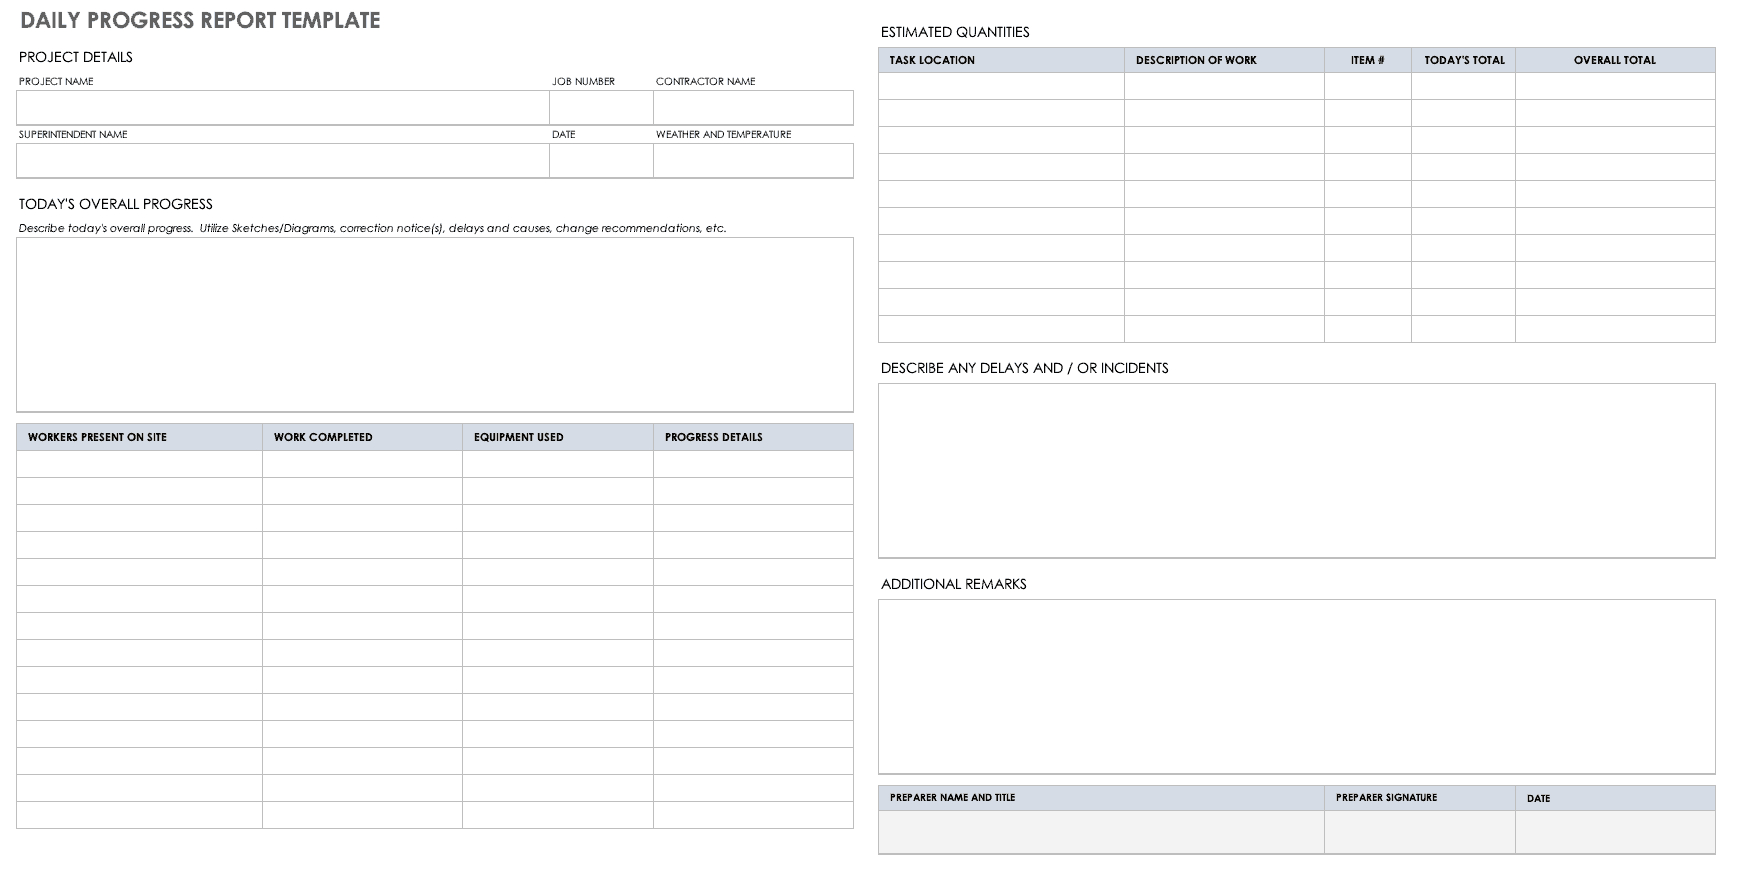 Free Project Report Templates   Smartsheet Intended For Activity Report Template Word